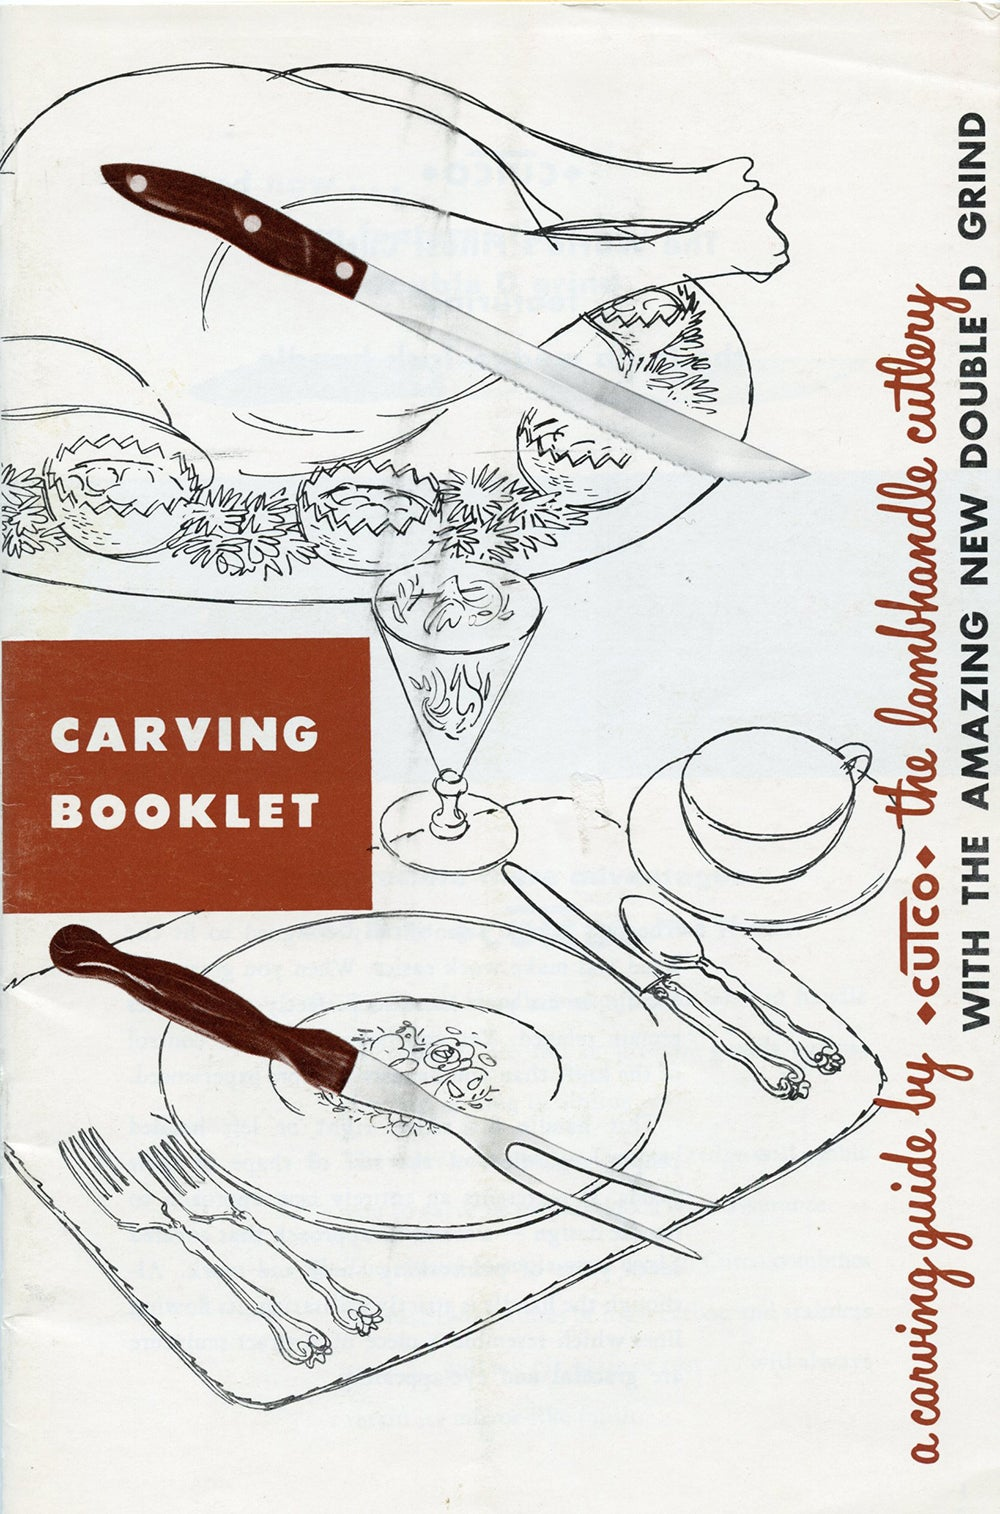 Image of Carving Booklet from Cutco Knives